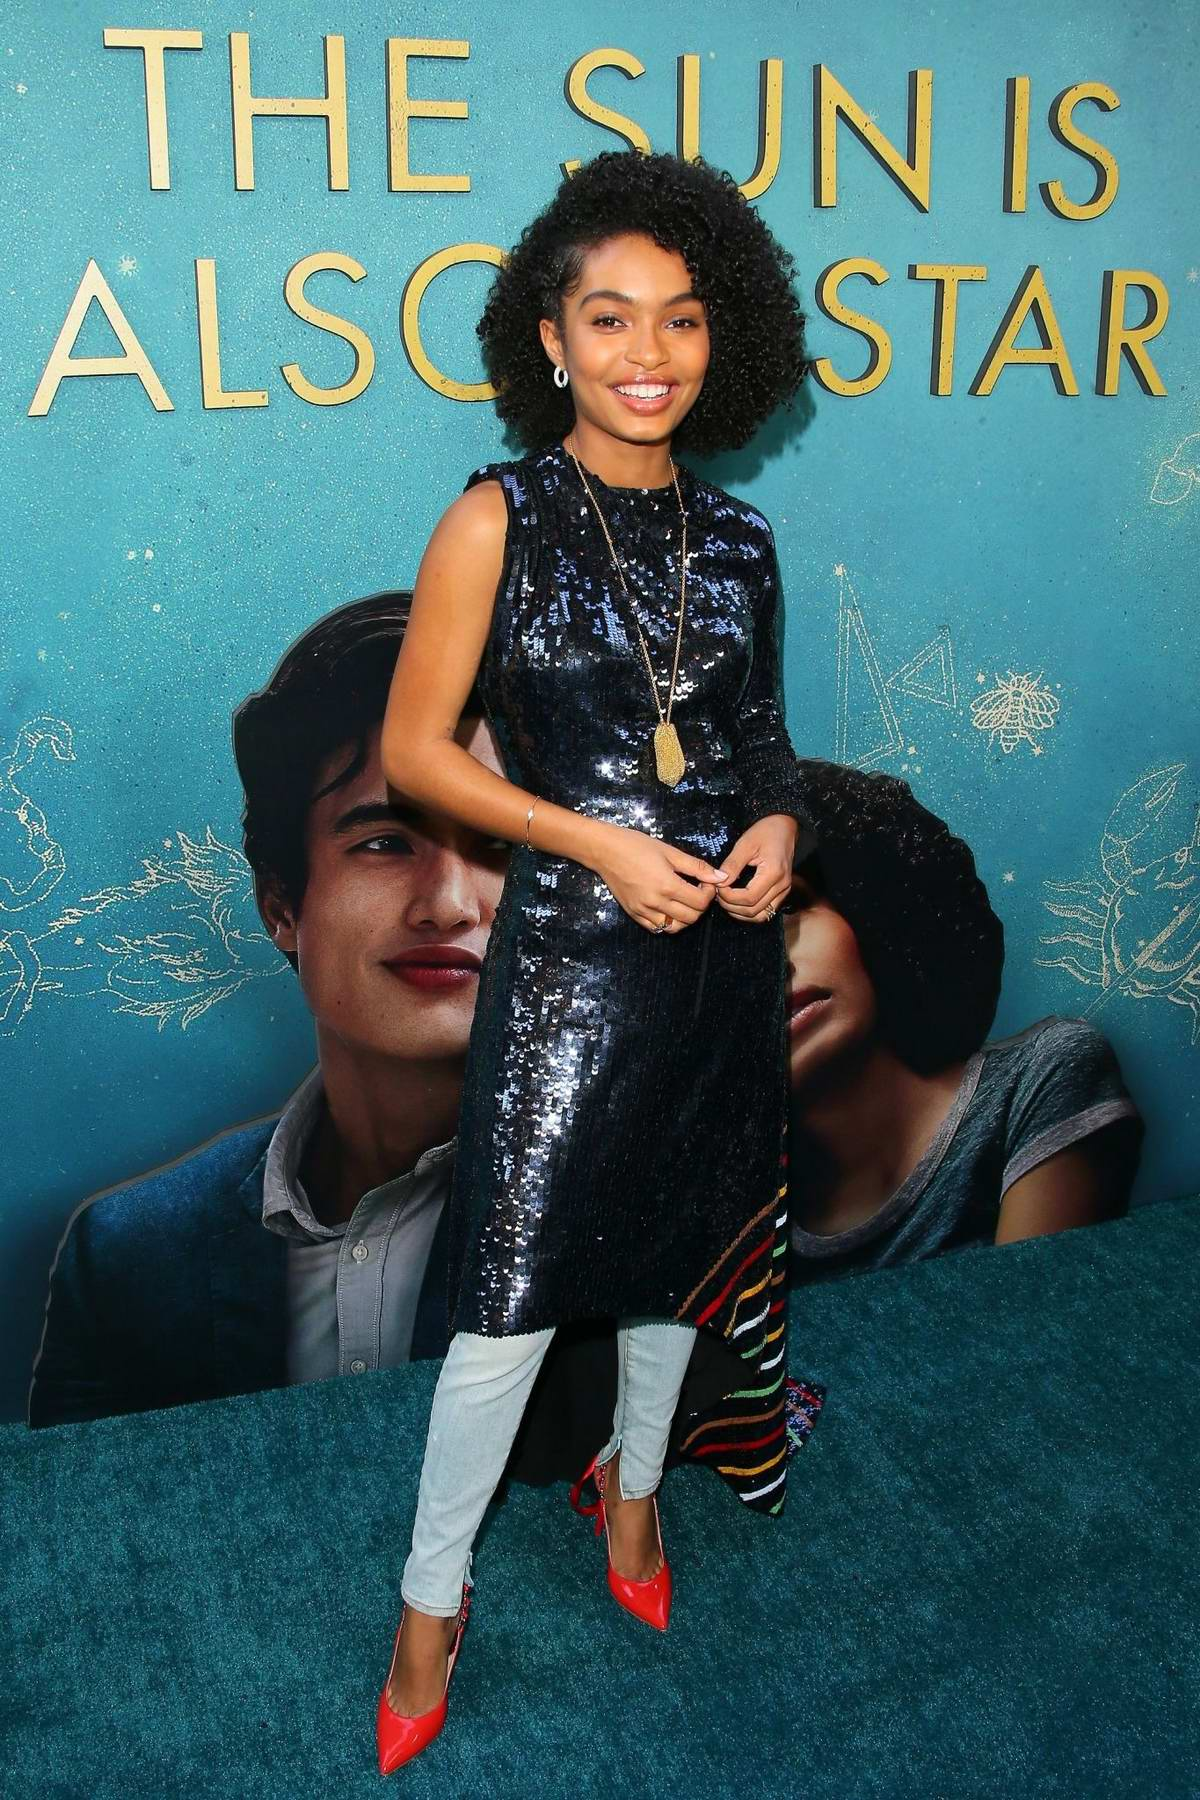 Yara Shahidi attends the world premiere of 'The Sun Is Also A Star' at Pacific Theaters in Los Angeles